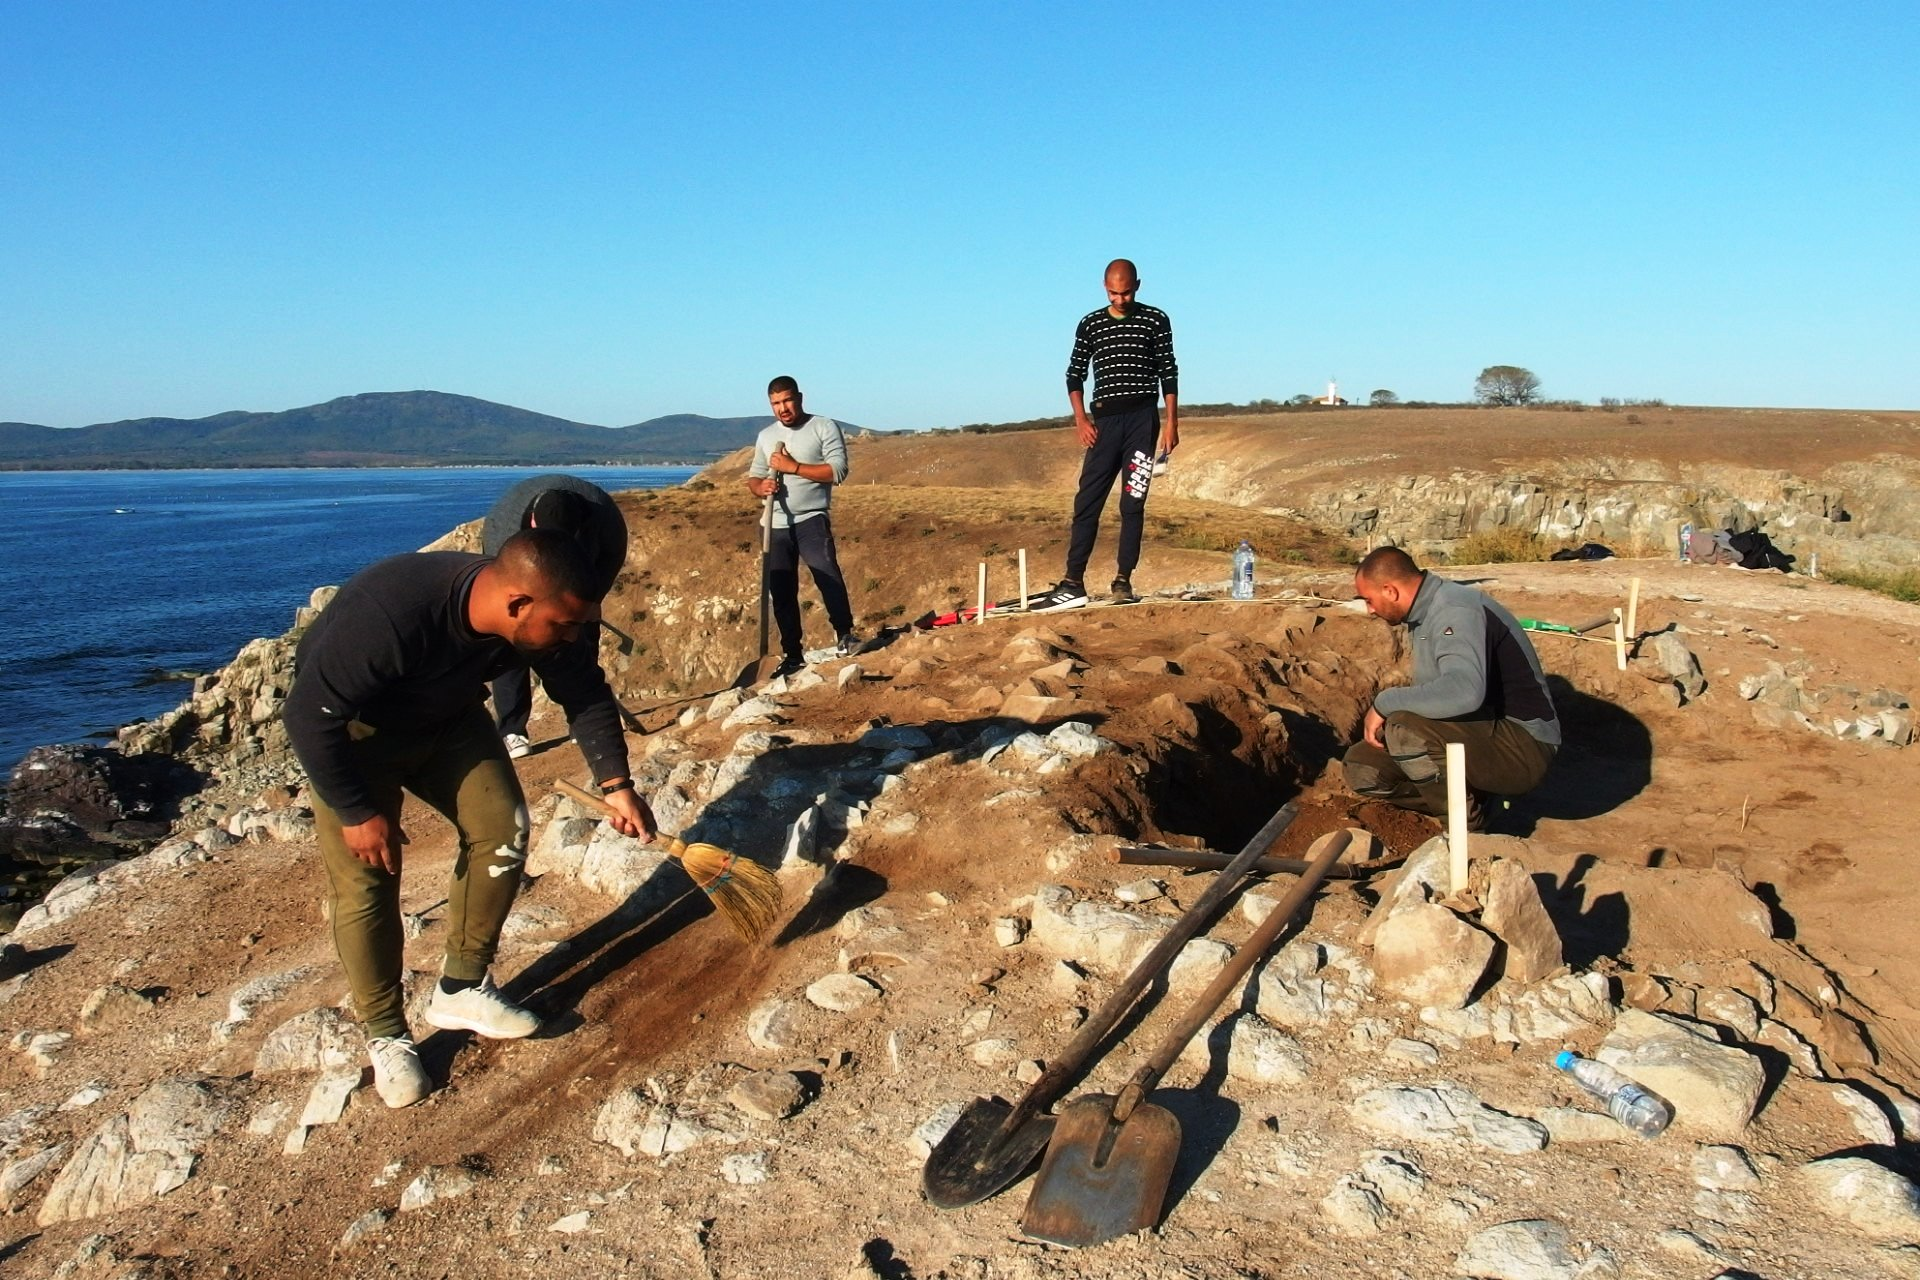 5th Century BC Ancient Greek Shrine Discovered in First Ever Excavations on Tiny St. Peter Island off Bulgaria's Black Sea Coast near Sozopol